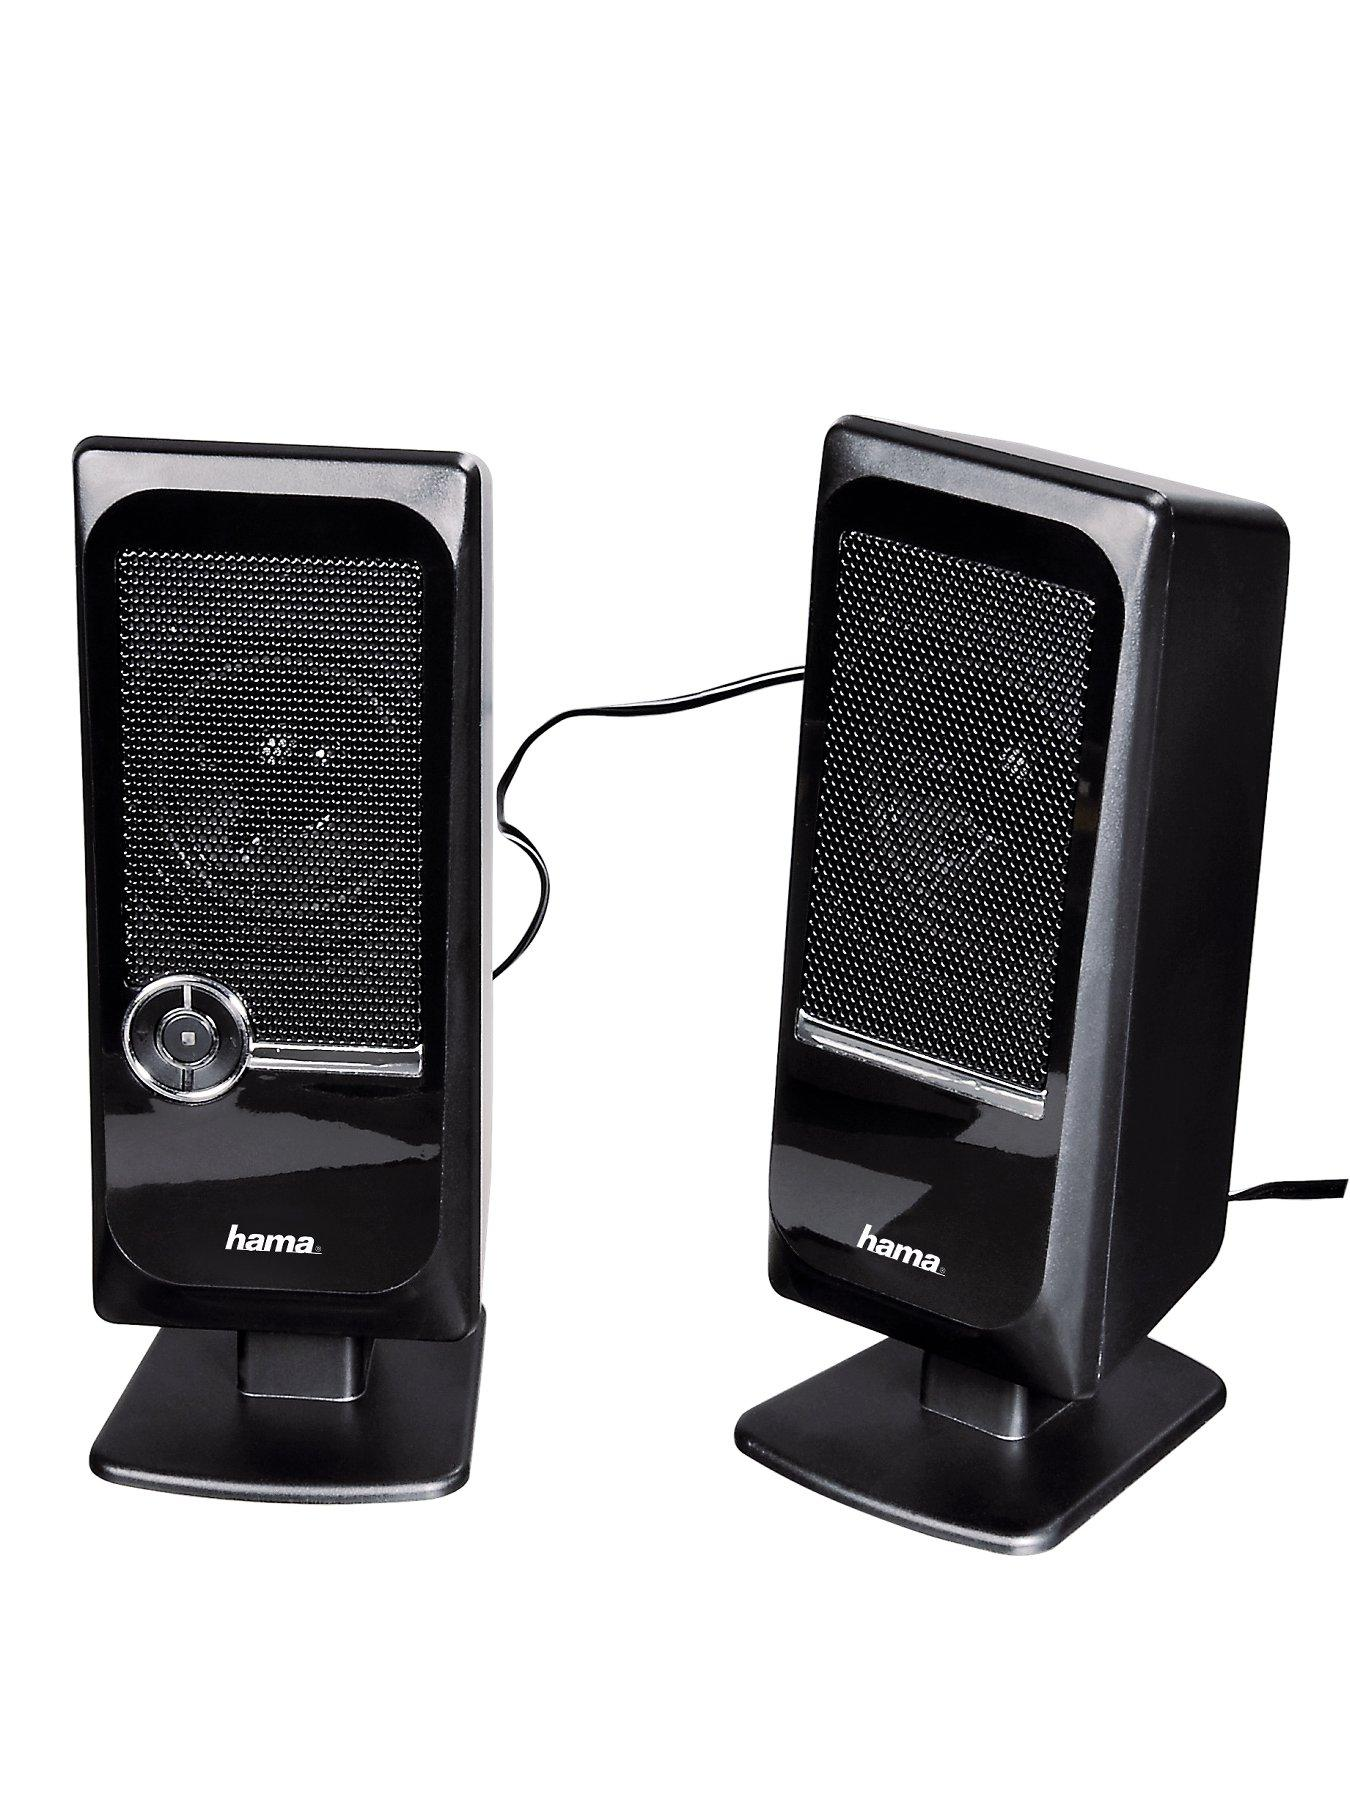 HAMA Hama Sonic Mobil 140 Portable PC Speaker